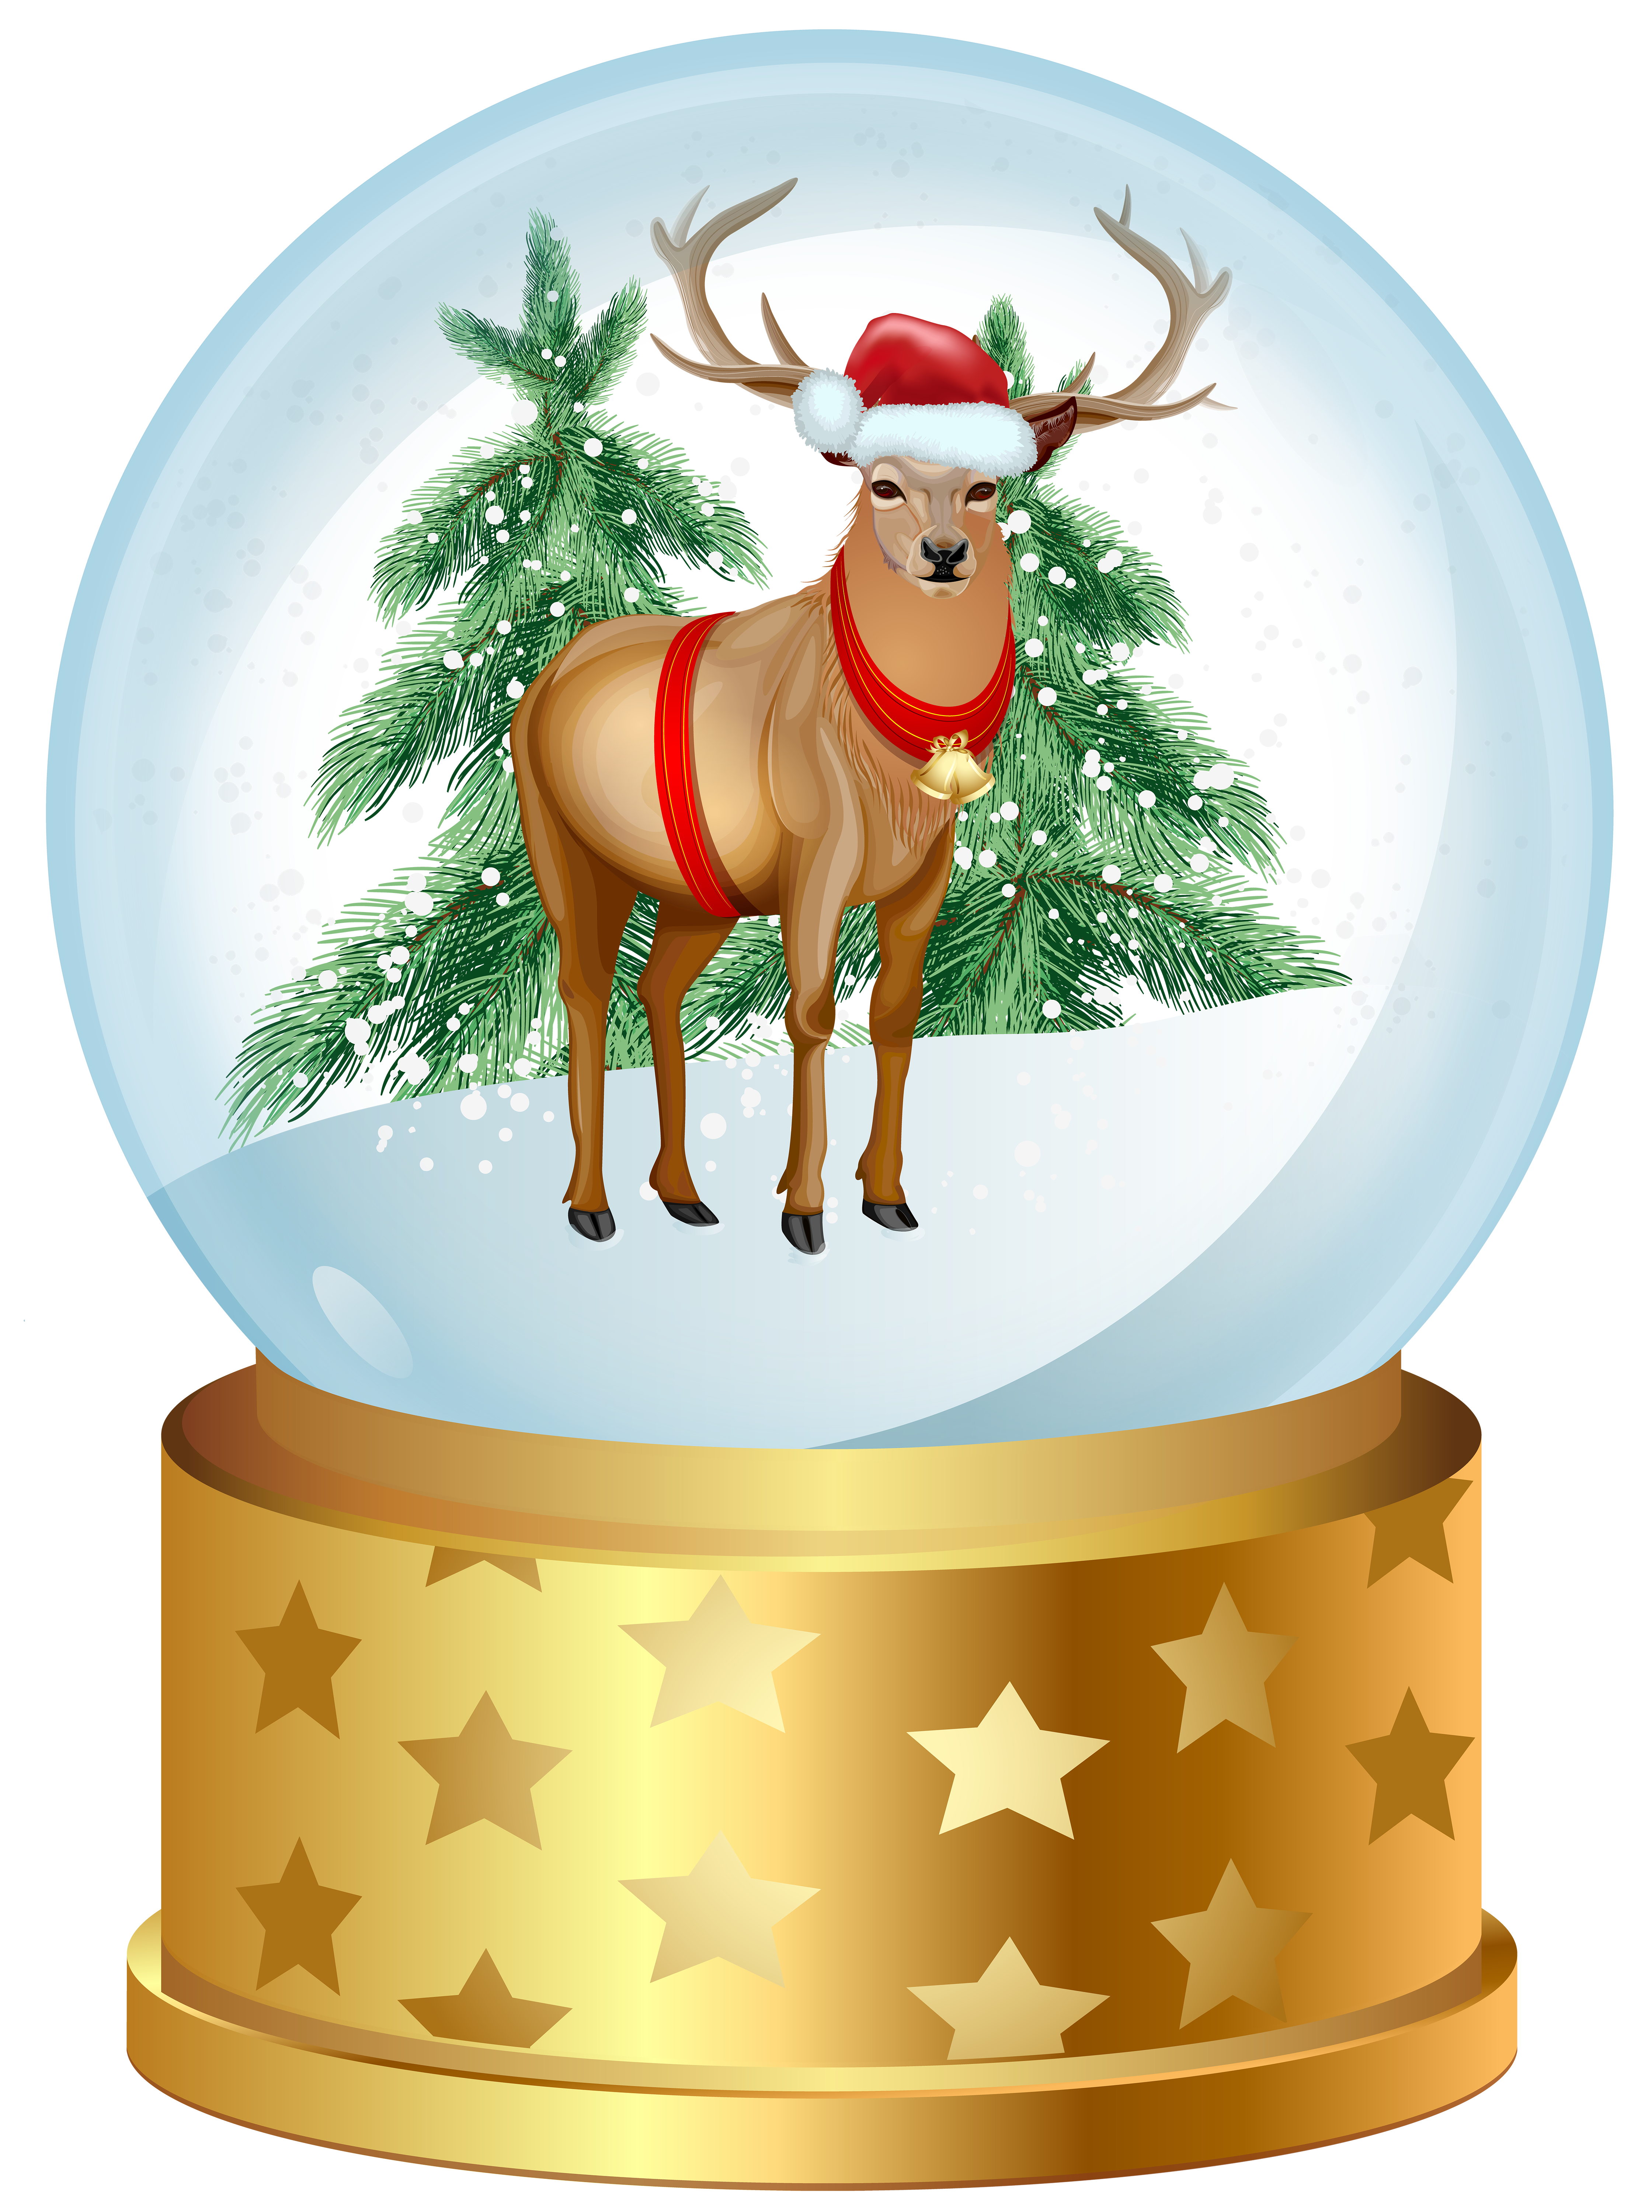 Deer clipart love. Christmas snow globe png